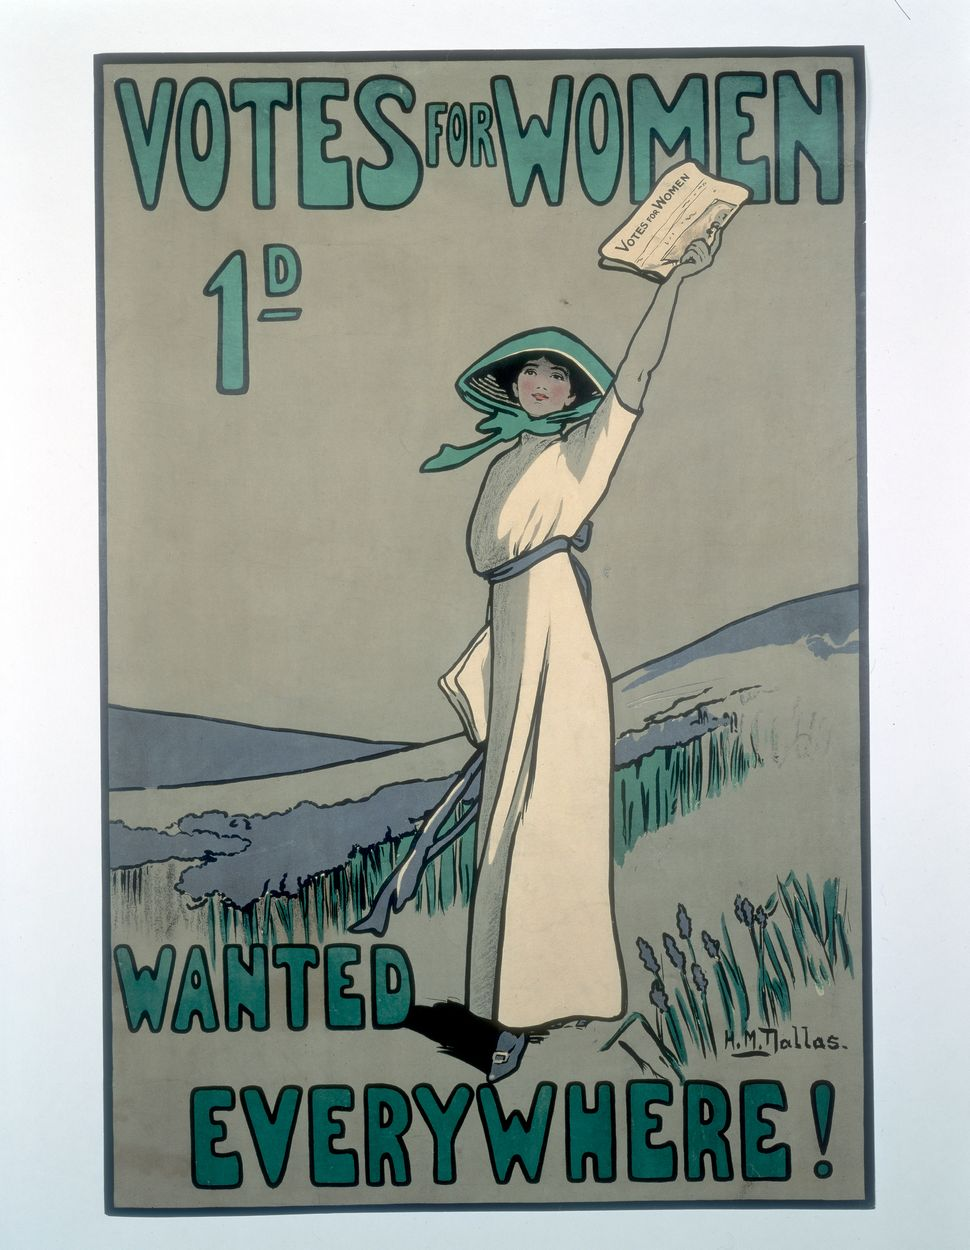 A suffragette poster created by Hilda Dallas who was a member of the WSPU. She studied at the Slade School of Art from 1